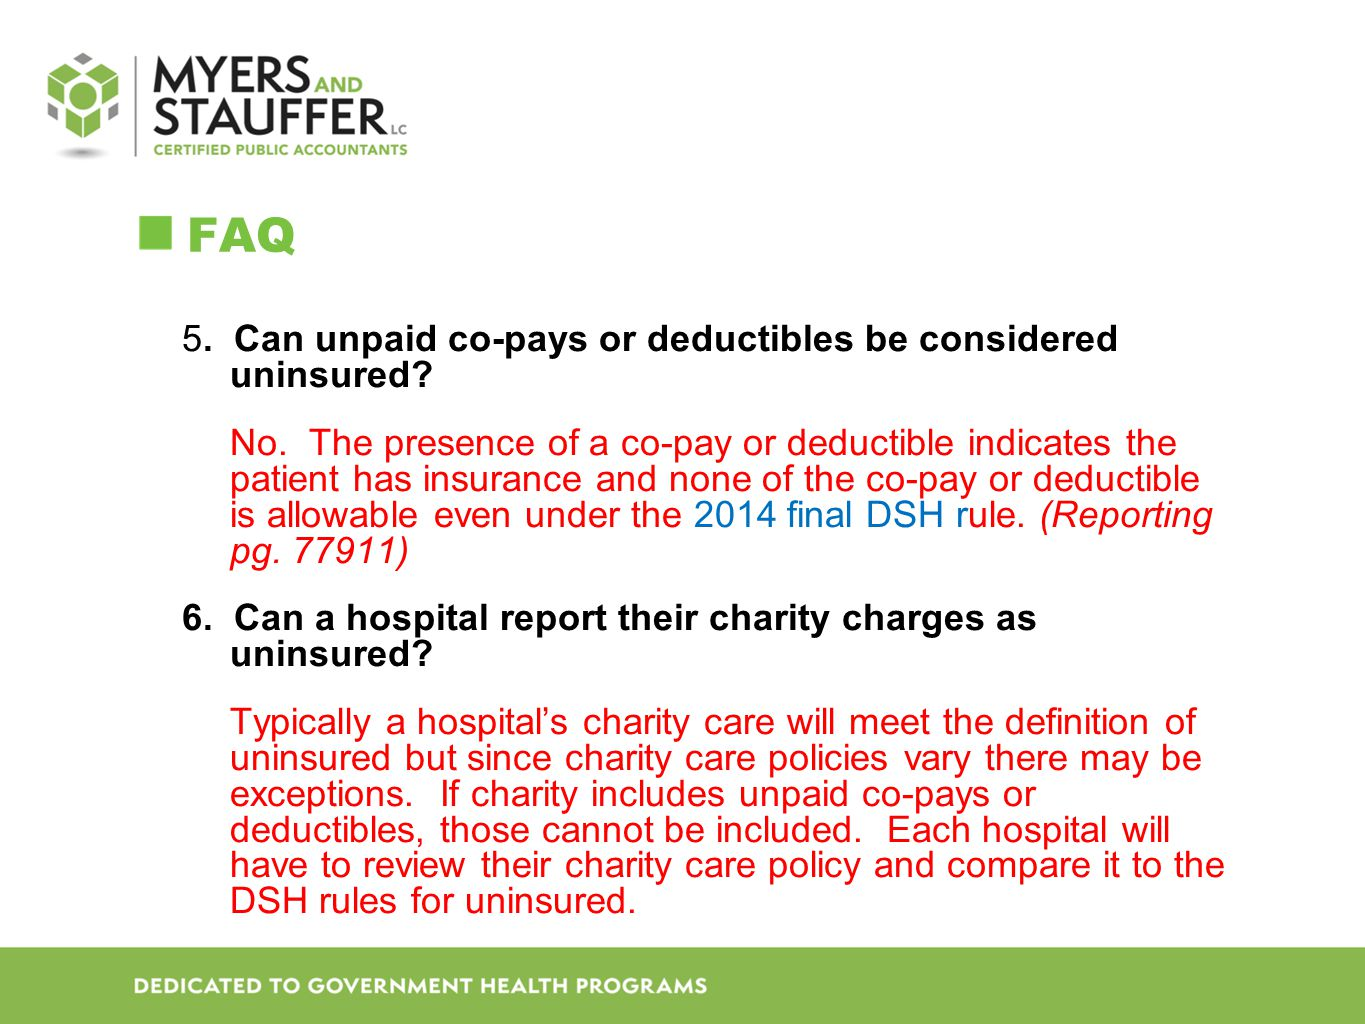 FAQ 5. Can unpaid co-pays or deductibles be considered uninsured